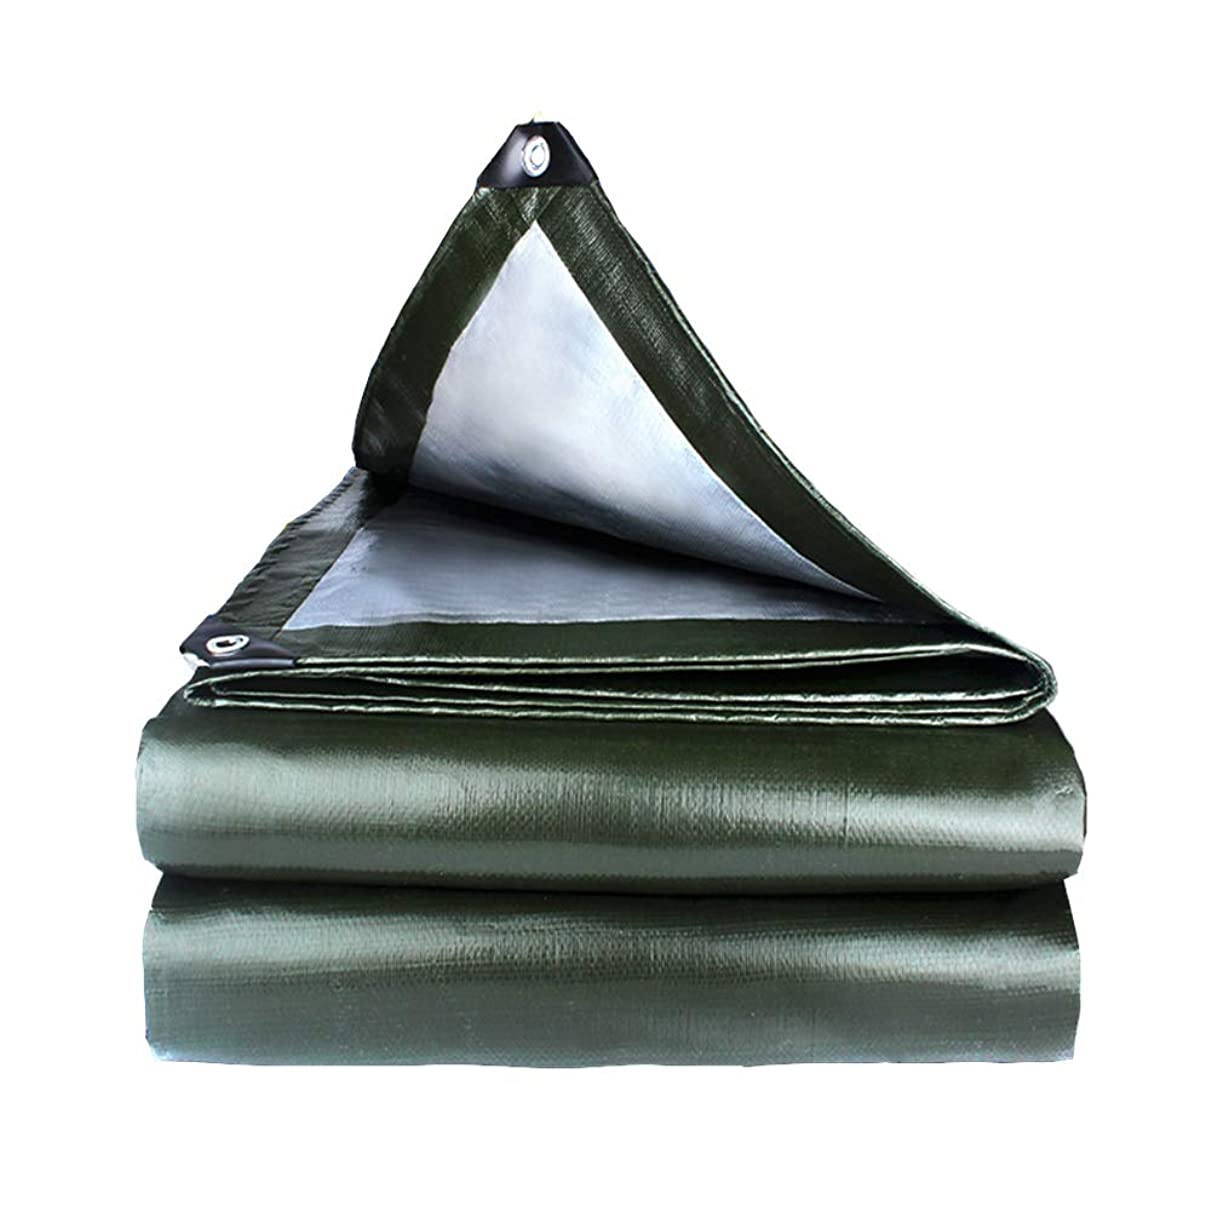 ZXXY Waterproof Tarpaulin, Army Green Tarp Sheet for Backyard Deck, Balcony, Porch, Pergola and Outdoor Camping Tent Cover, 180g/Square